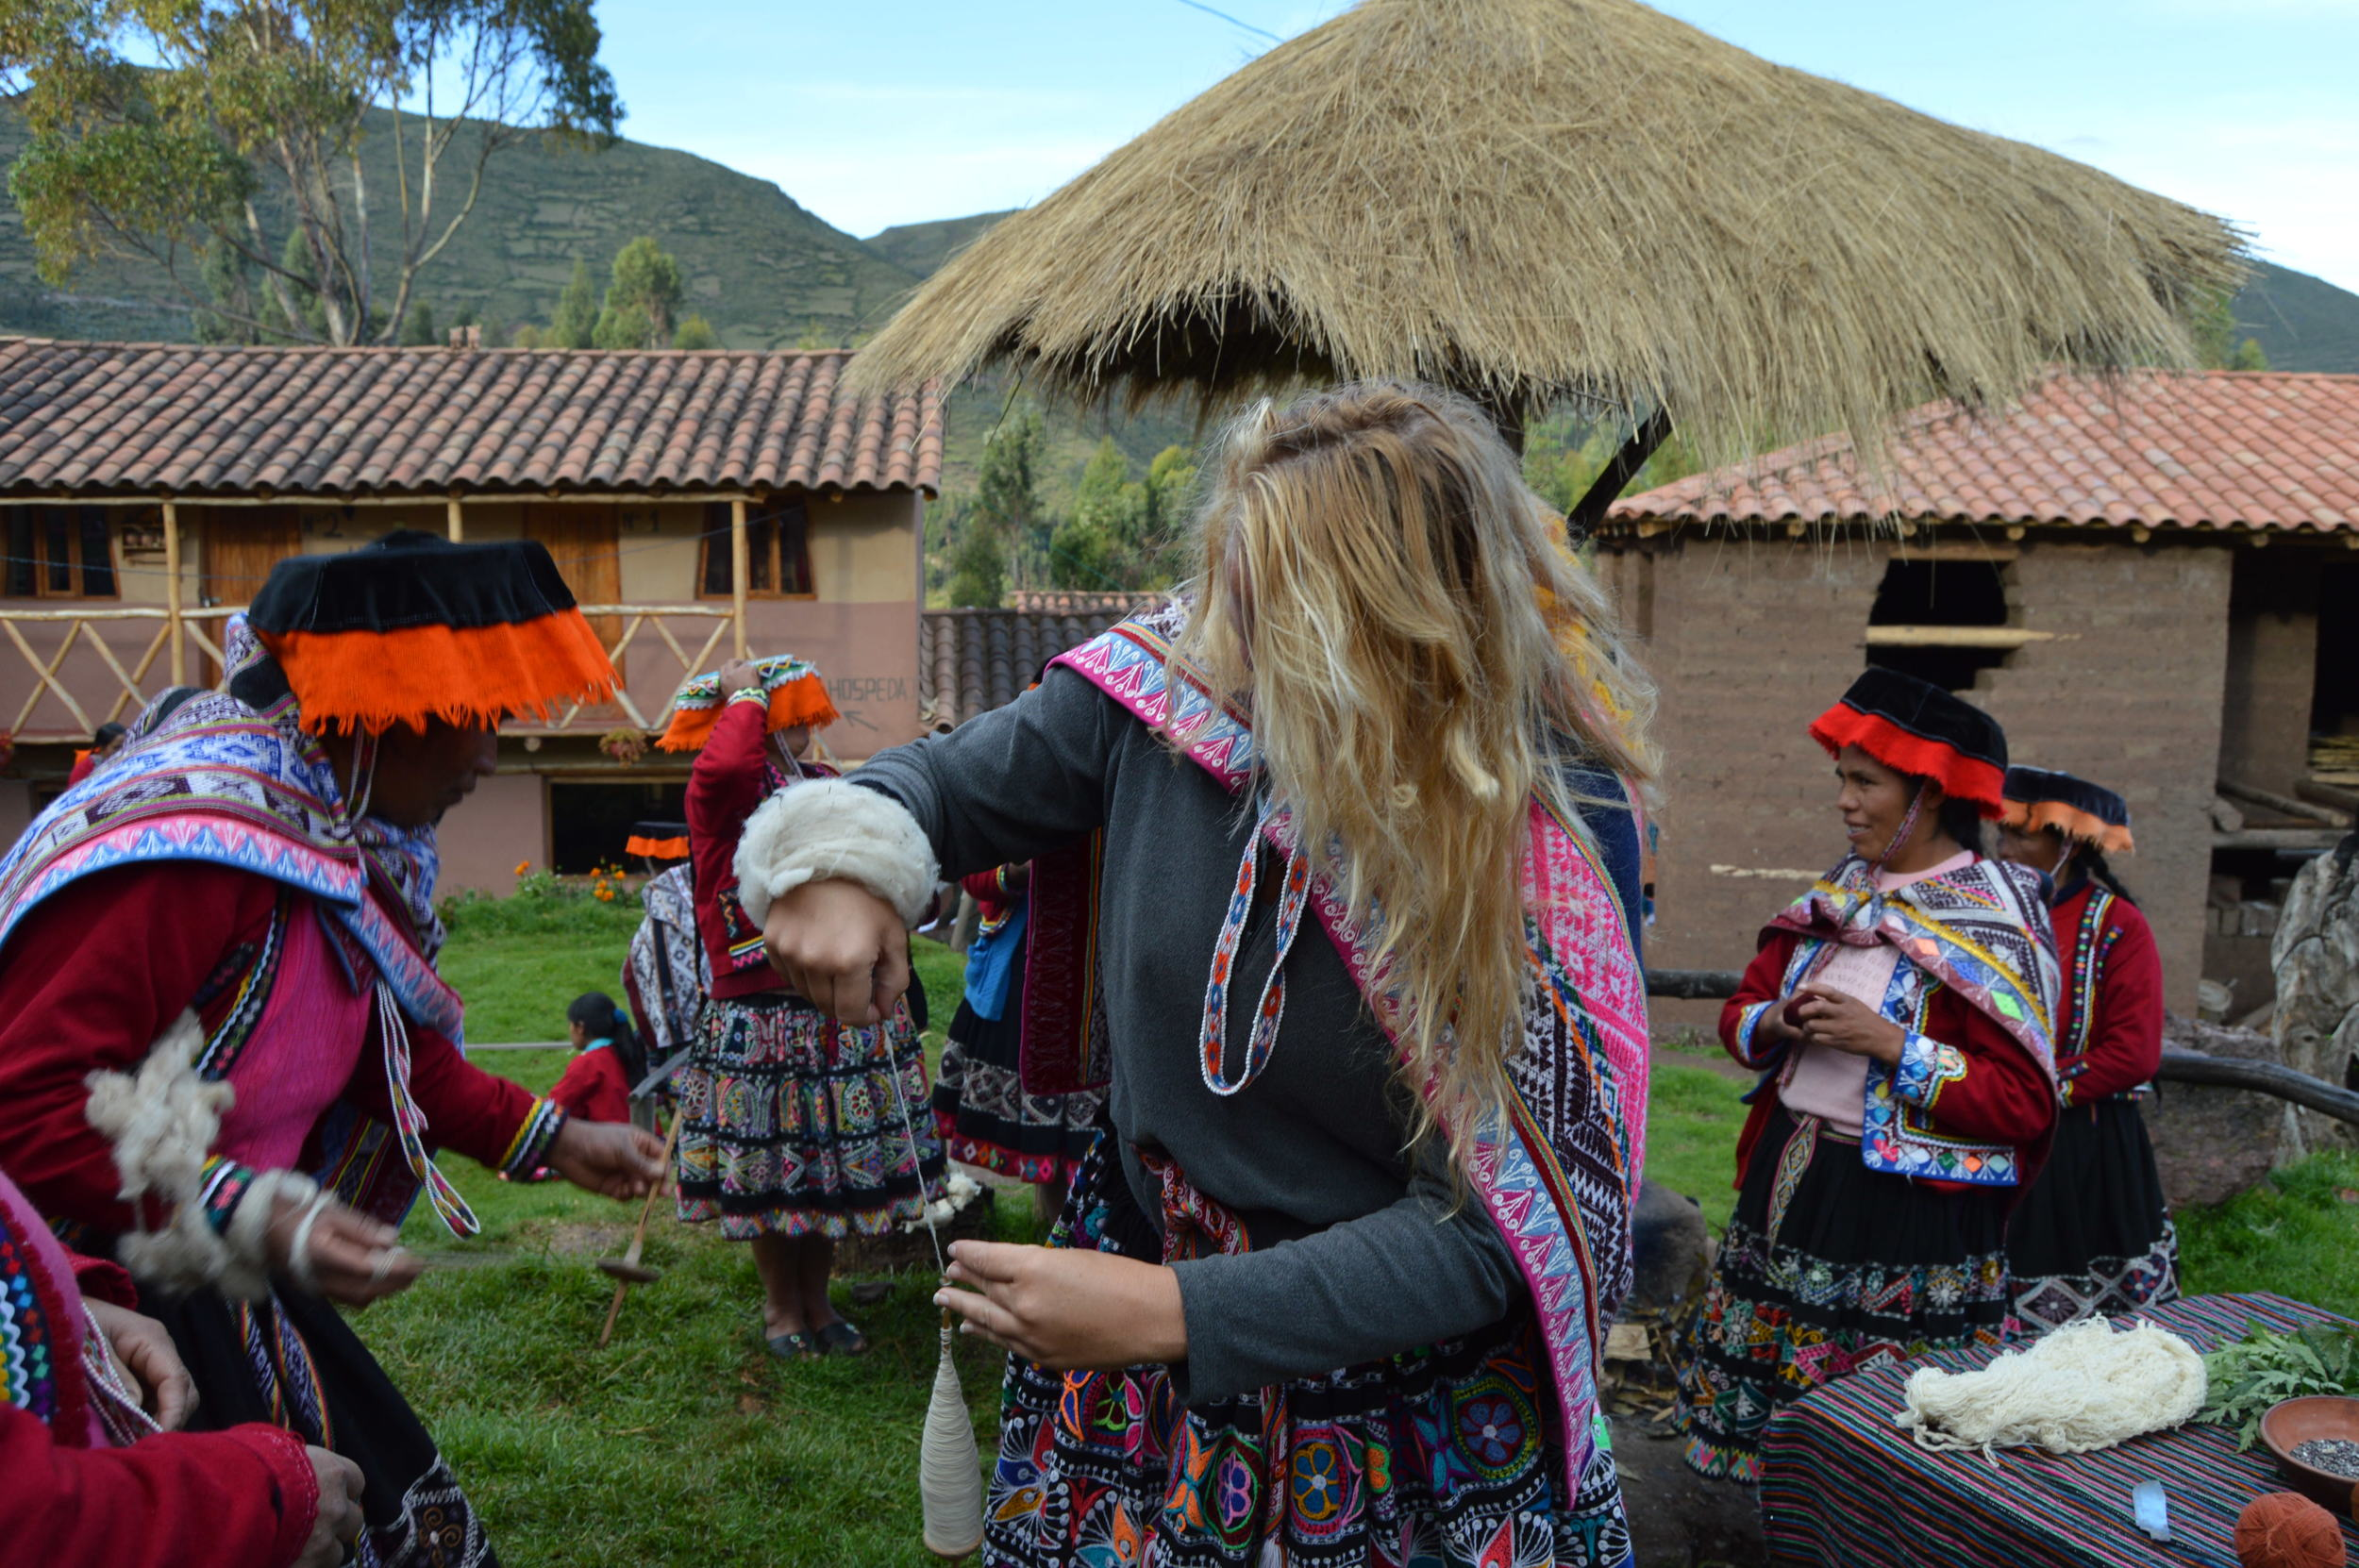 Demonstration and participation in the ancestral wool spooling process